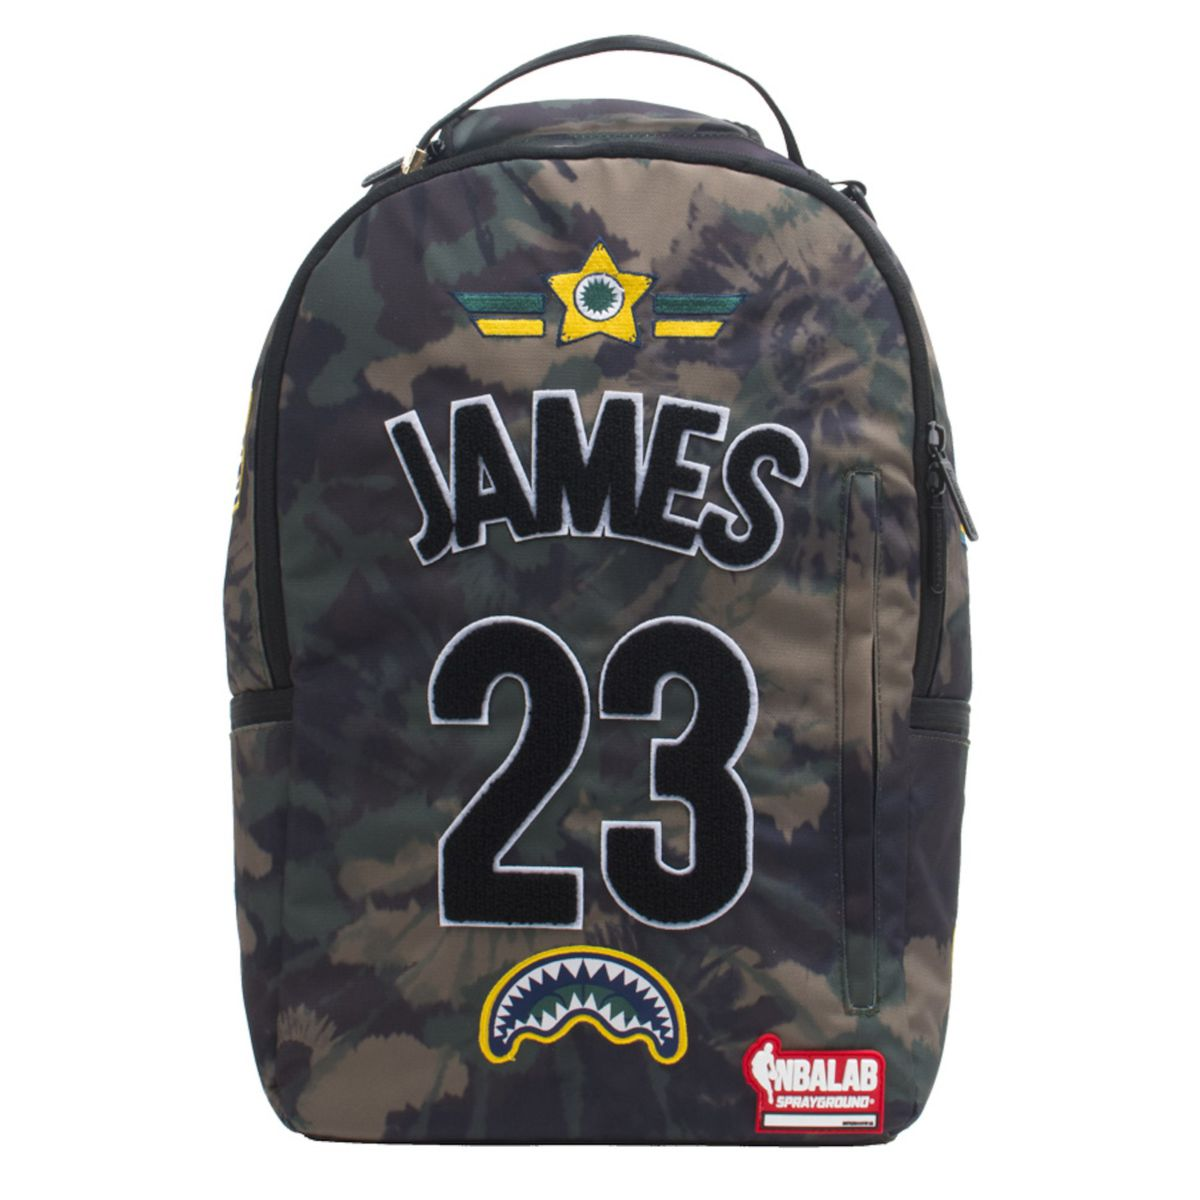 77d63b4b2111 LeBron James Sprayground Tie Dye Patches Backpack for  56.25 (usually  75)  NBA Store